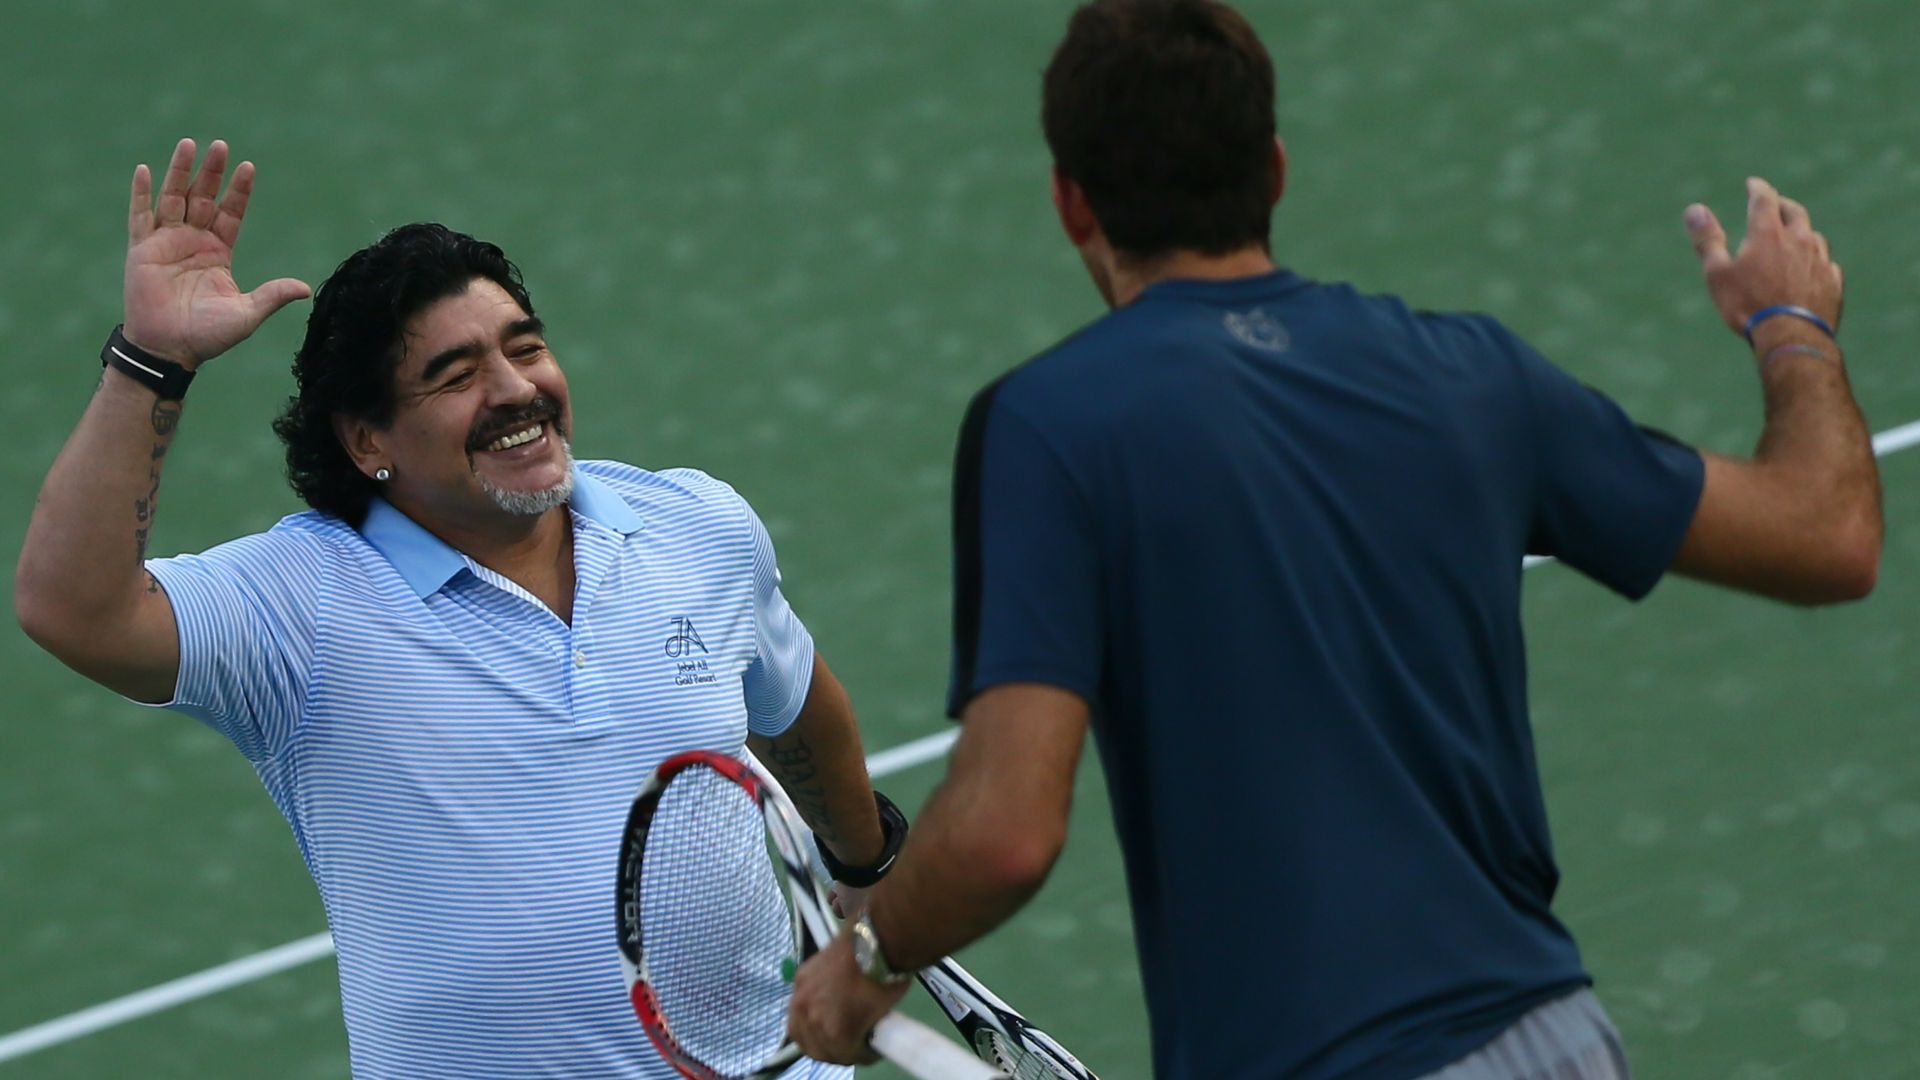 Murray and tennis world pays tribute to Maradona - sky sports